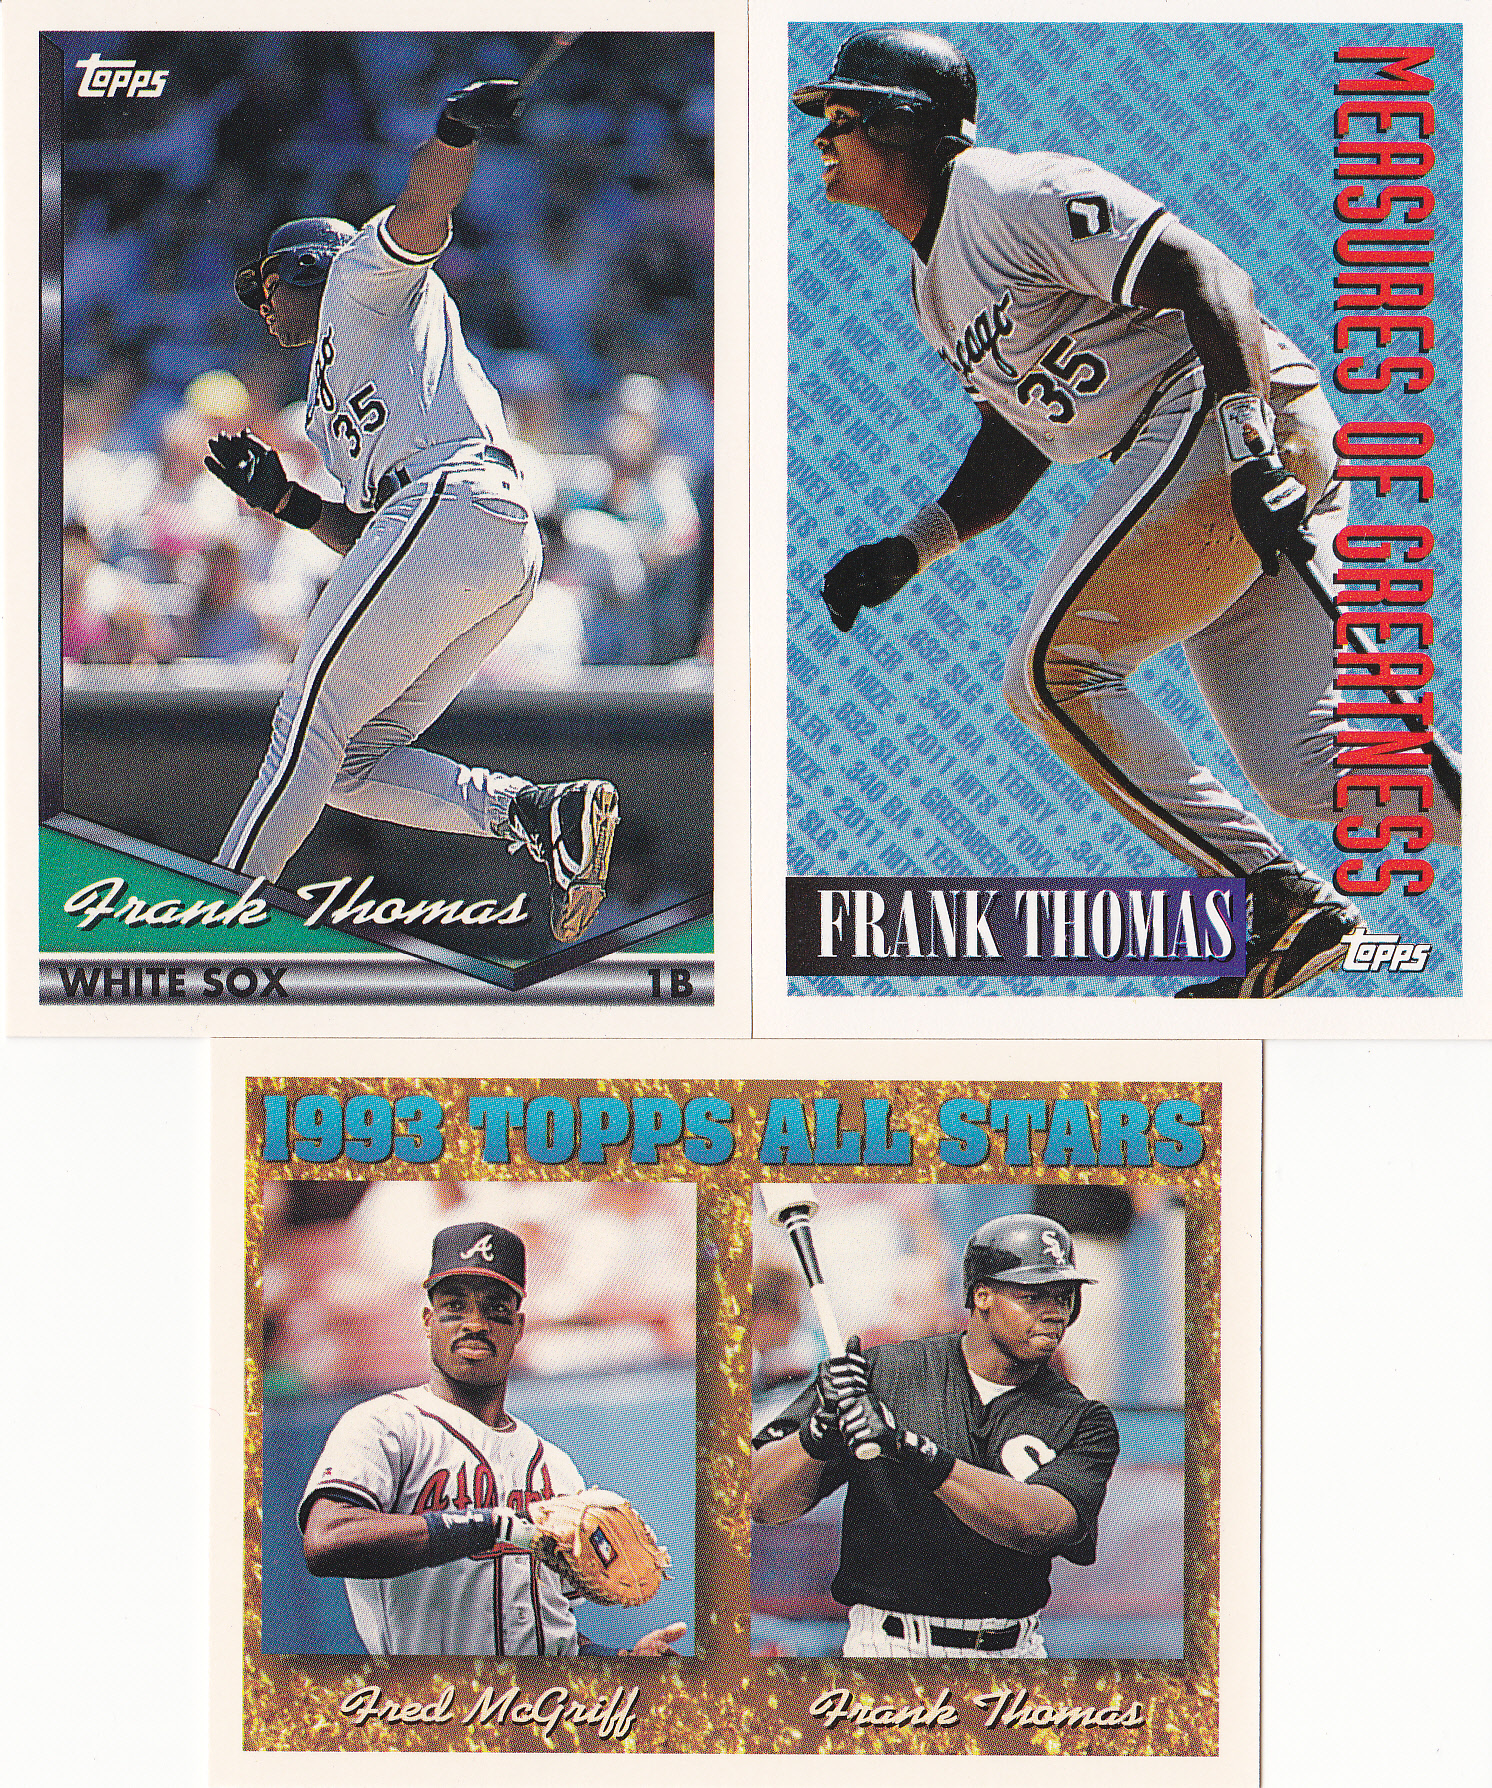 e11043cc20 Completed set – 1994 Topps | Lifetime Topps project